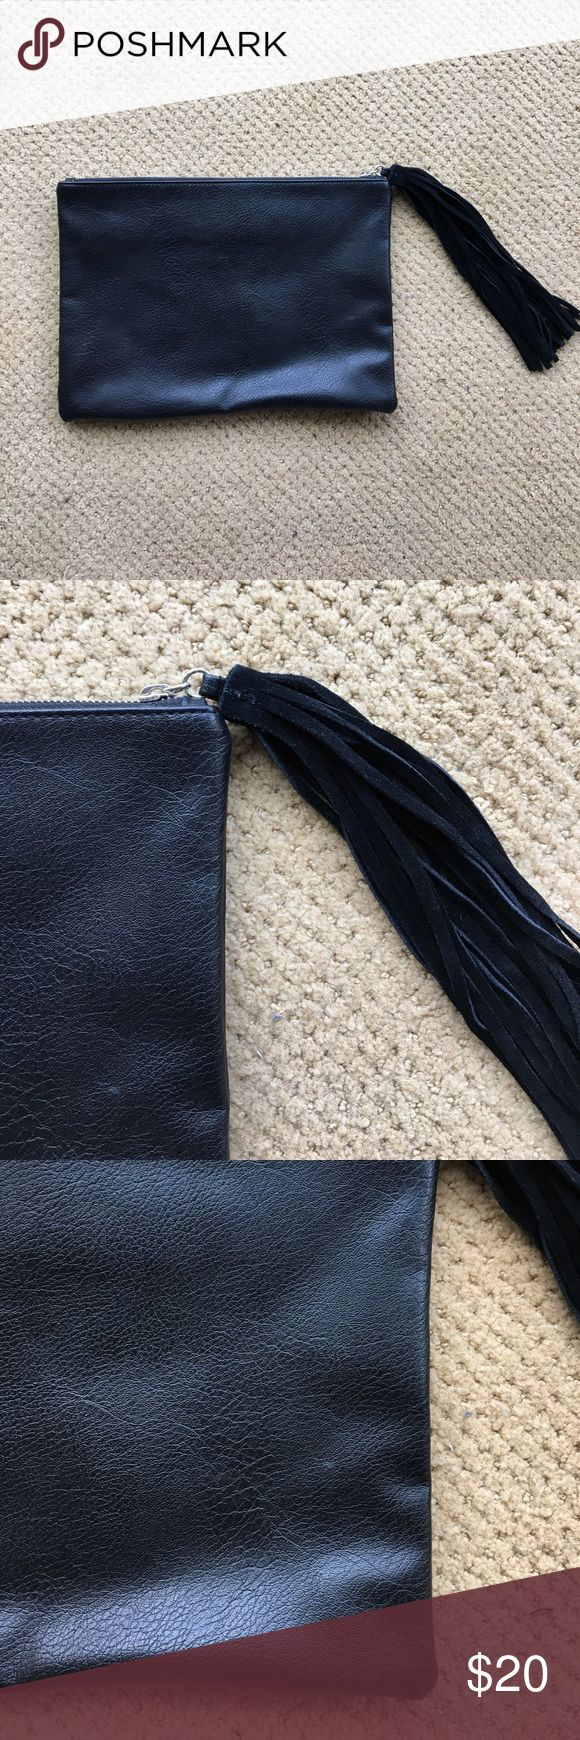 Forever 21 black leather clutch 🎀 Forever 21 black fake leather clutch, used twice. Looks brand new, very fashionable. Easy to wear. Forever 21 Bags Clutches & Wristlets